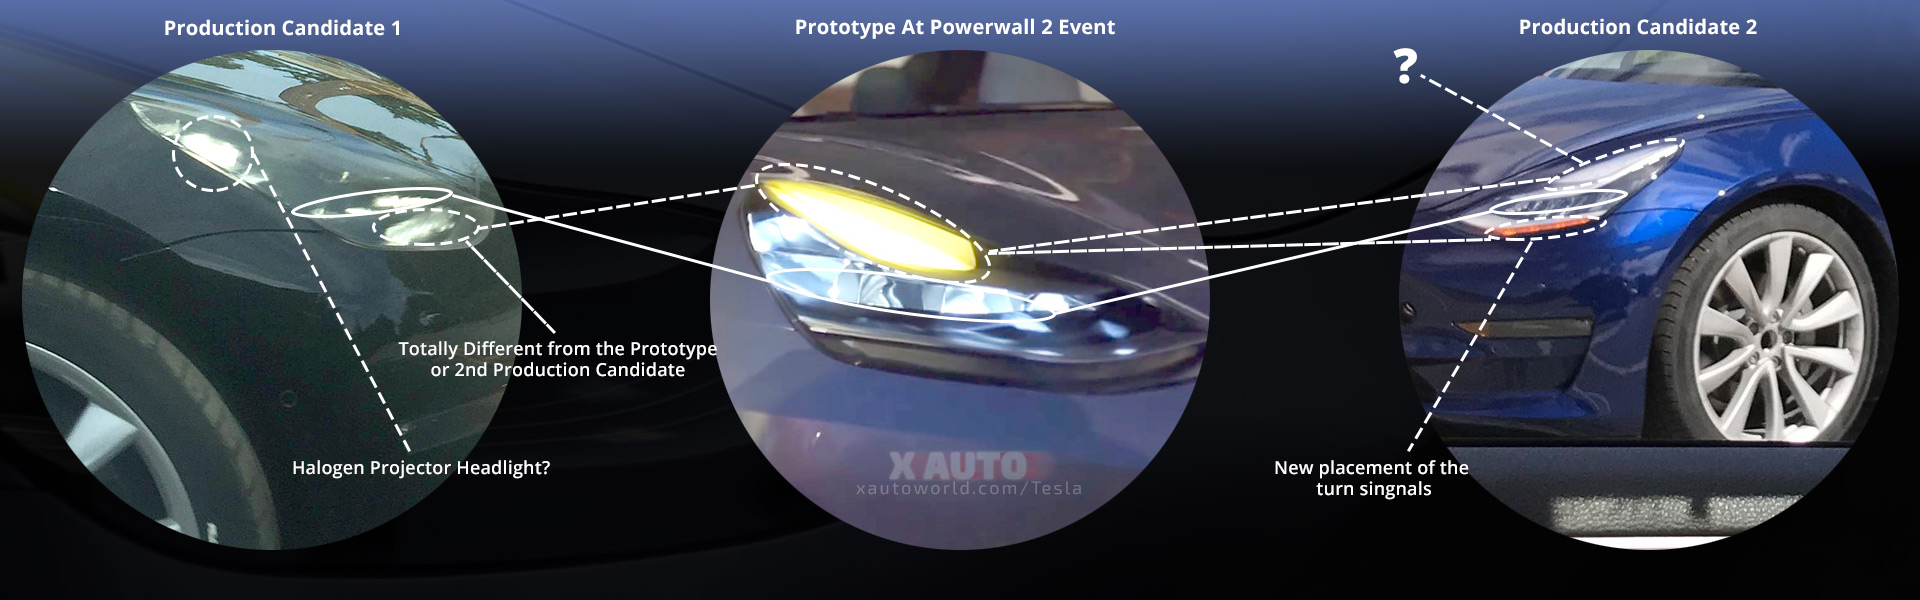 Model 3 Headlights - From Prototype To Production Candidate